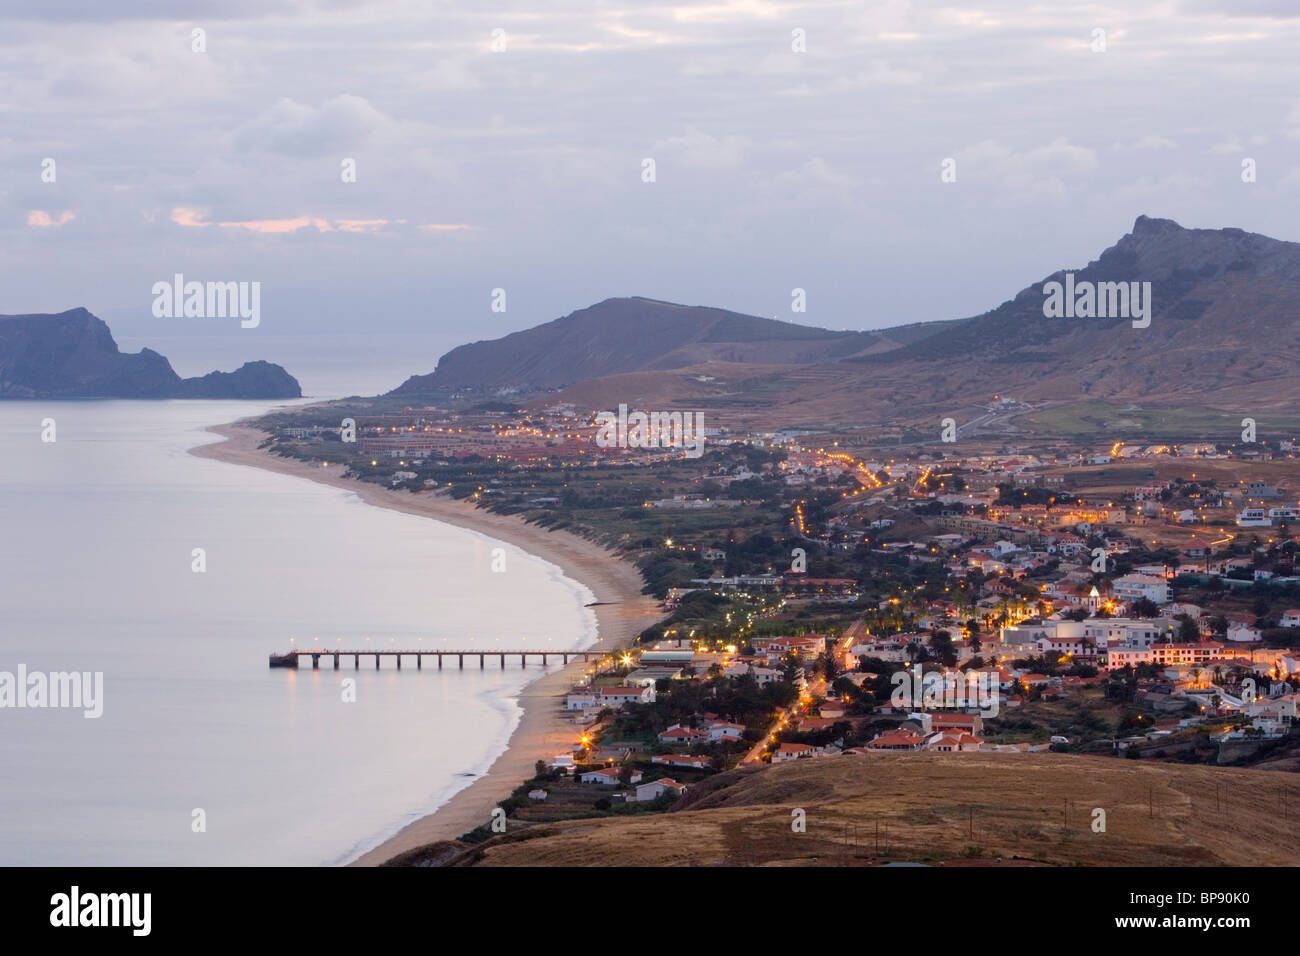 Vila Baleira at dusk seen from Portela, Porto Santo, near Madeira, Portugal - Stock Image